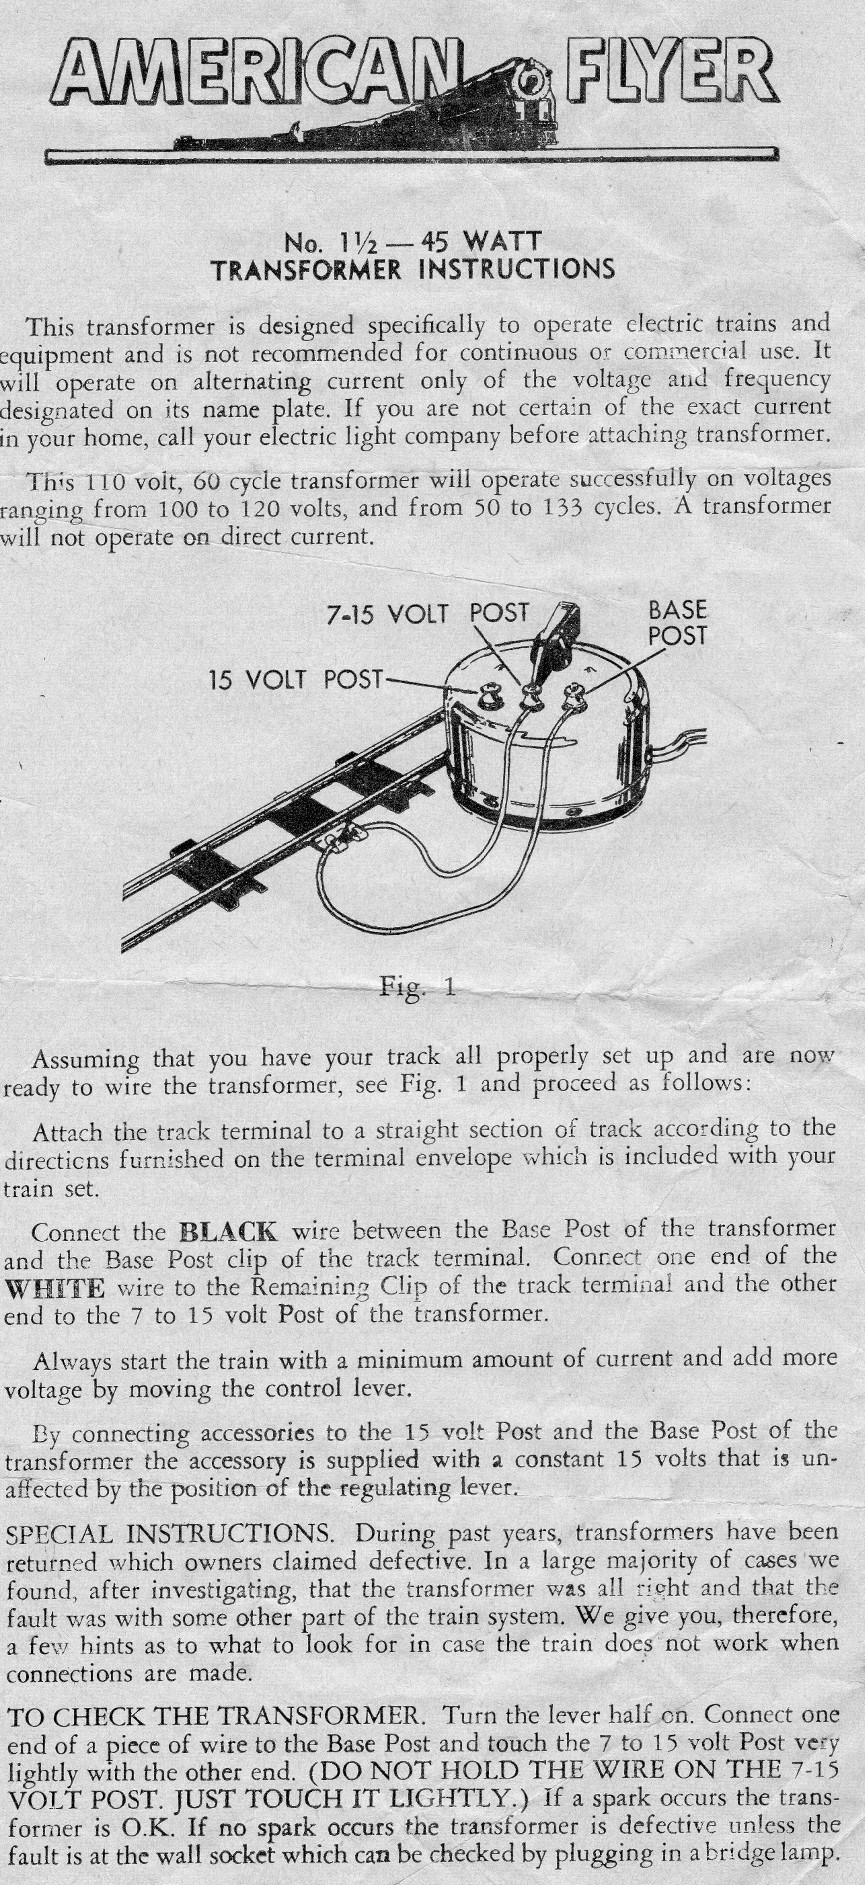 American Flyer No. 1½ - 45W Transformer Instructions - Page 1